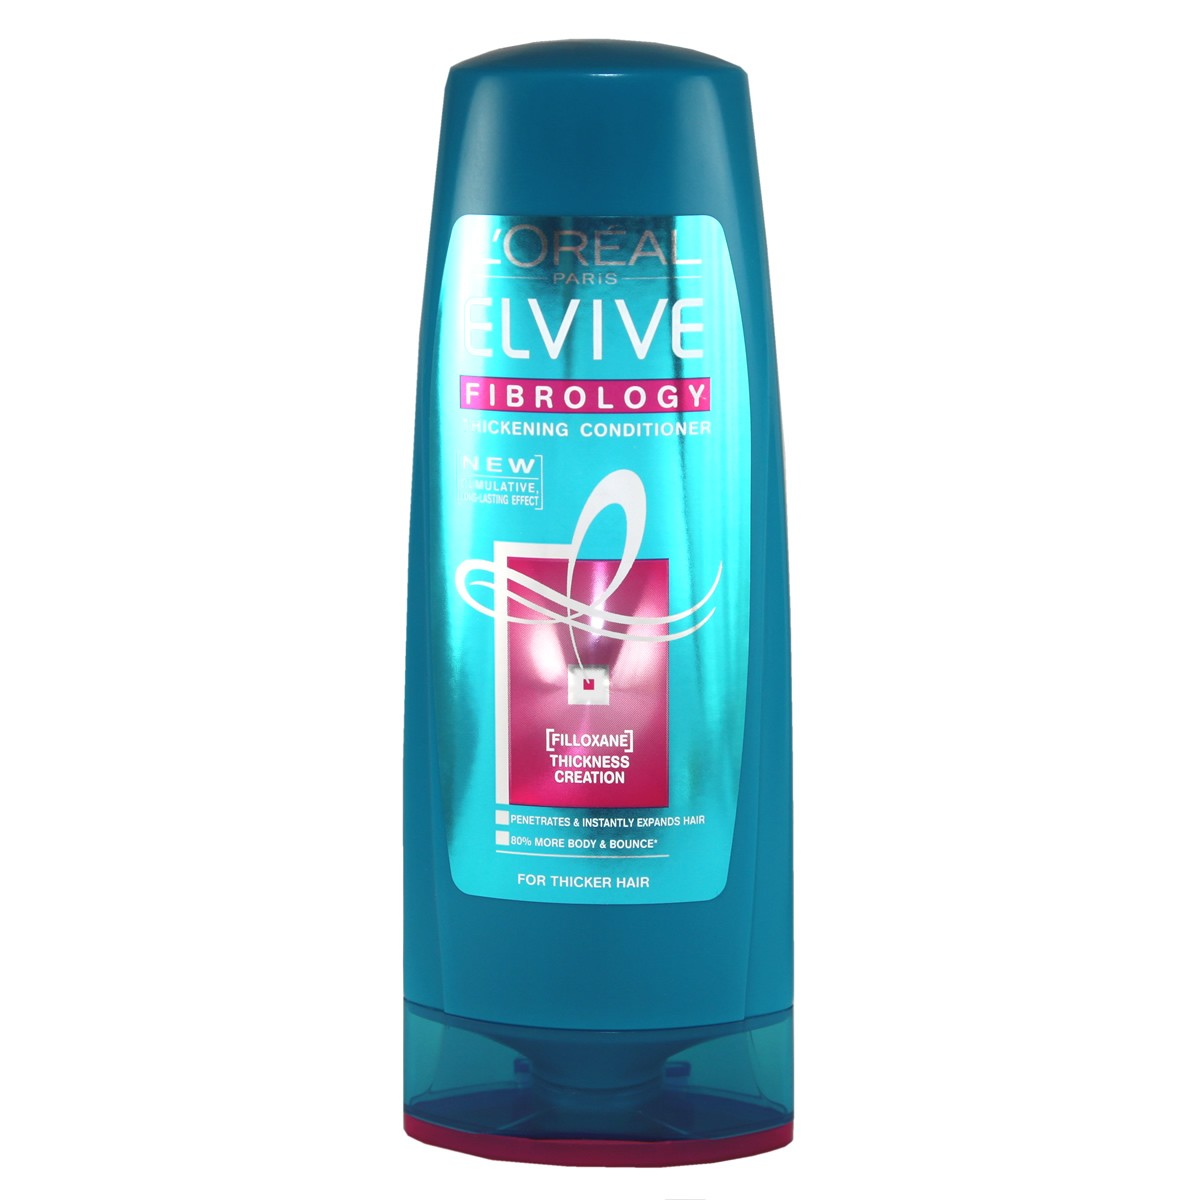 L'Oreal Paris Elvive Fibrology Thickening Conditioner